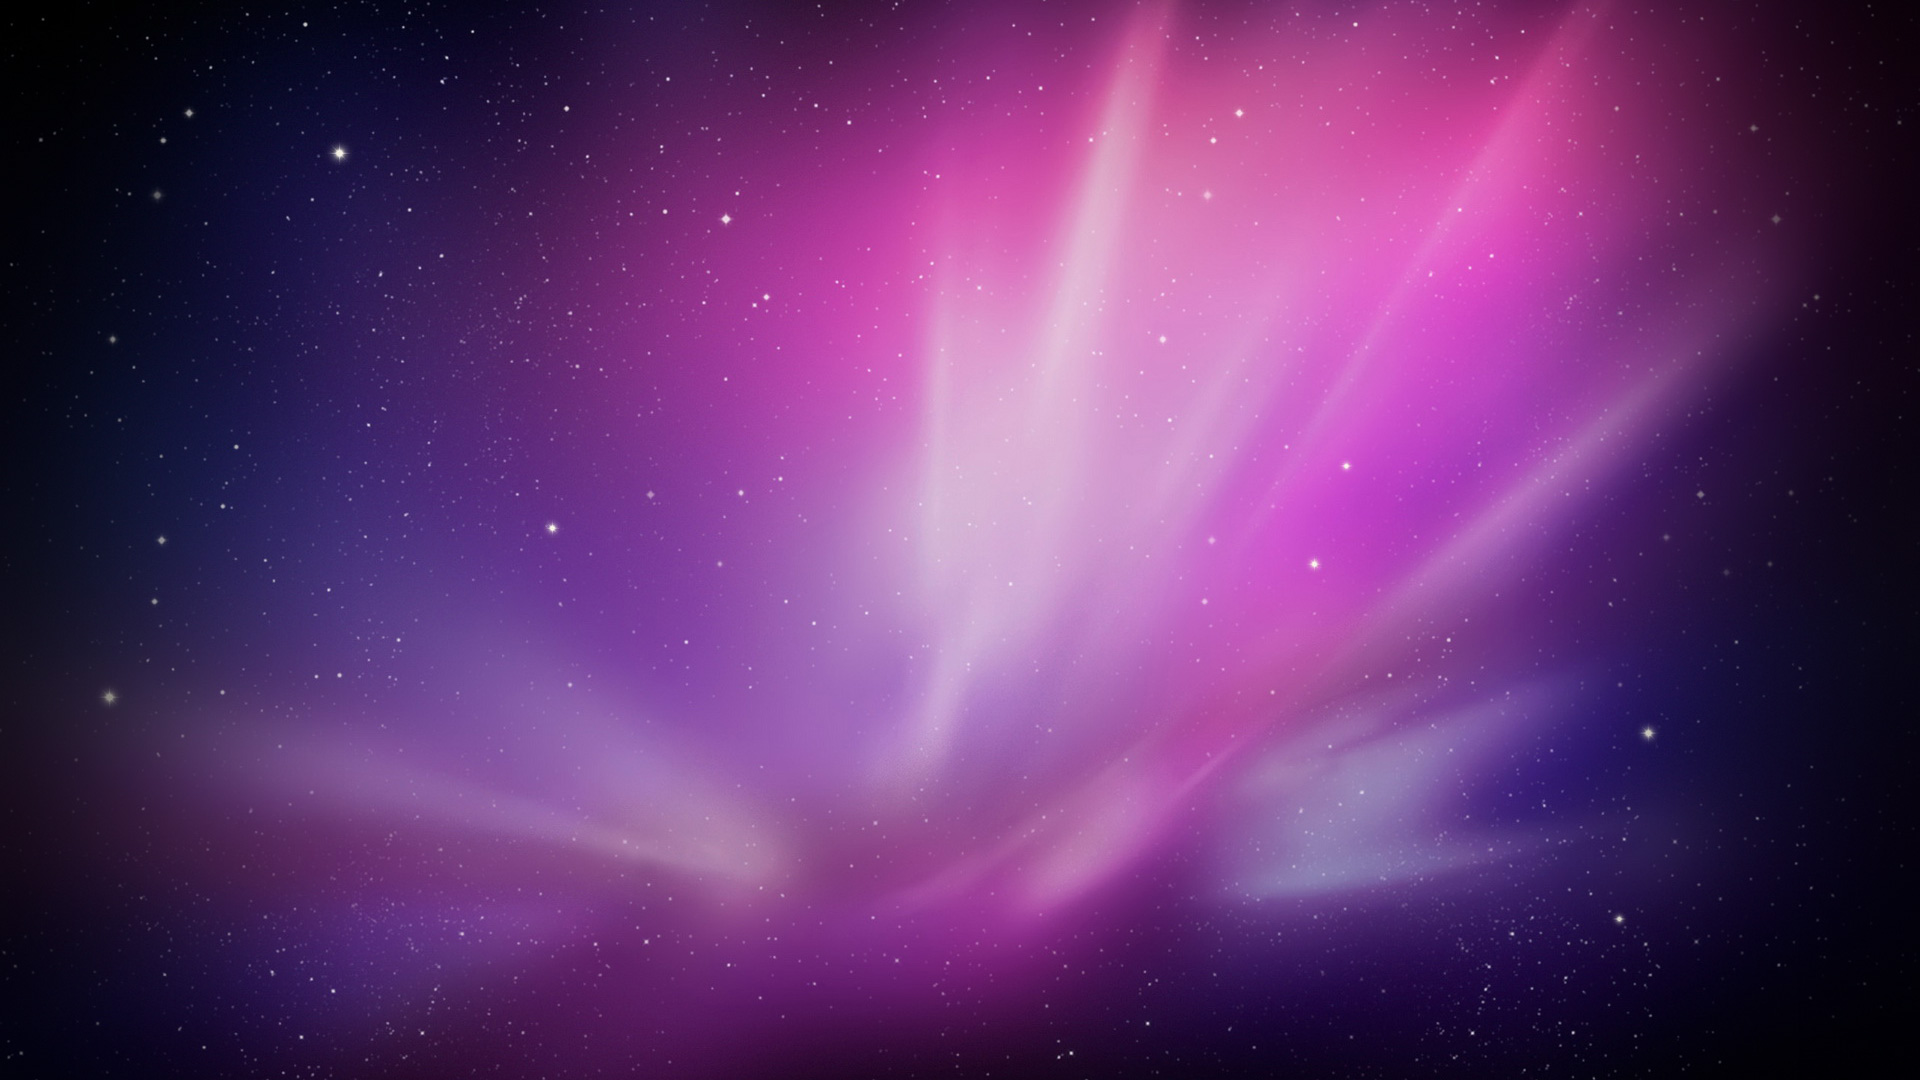 nebula space wallpapers widescreen - photo #42